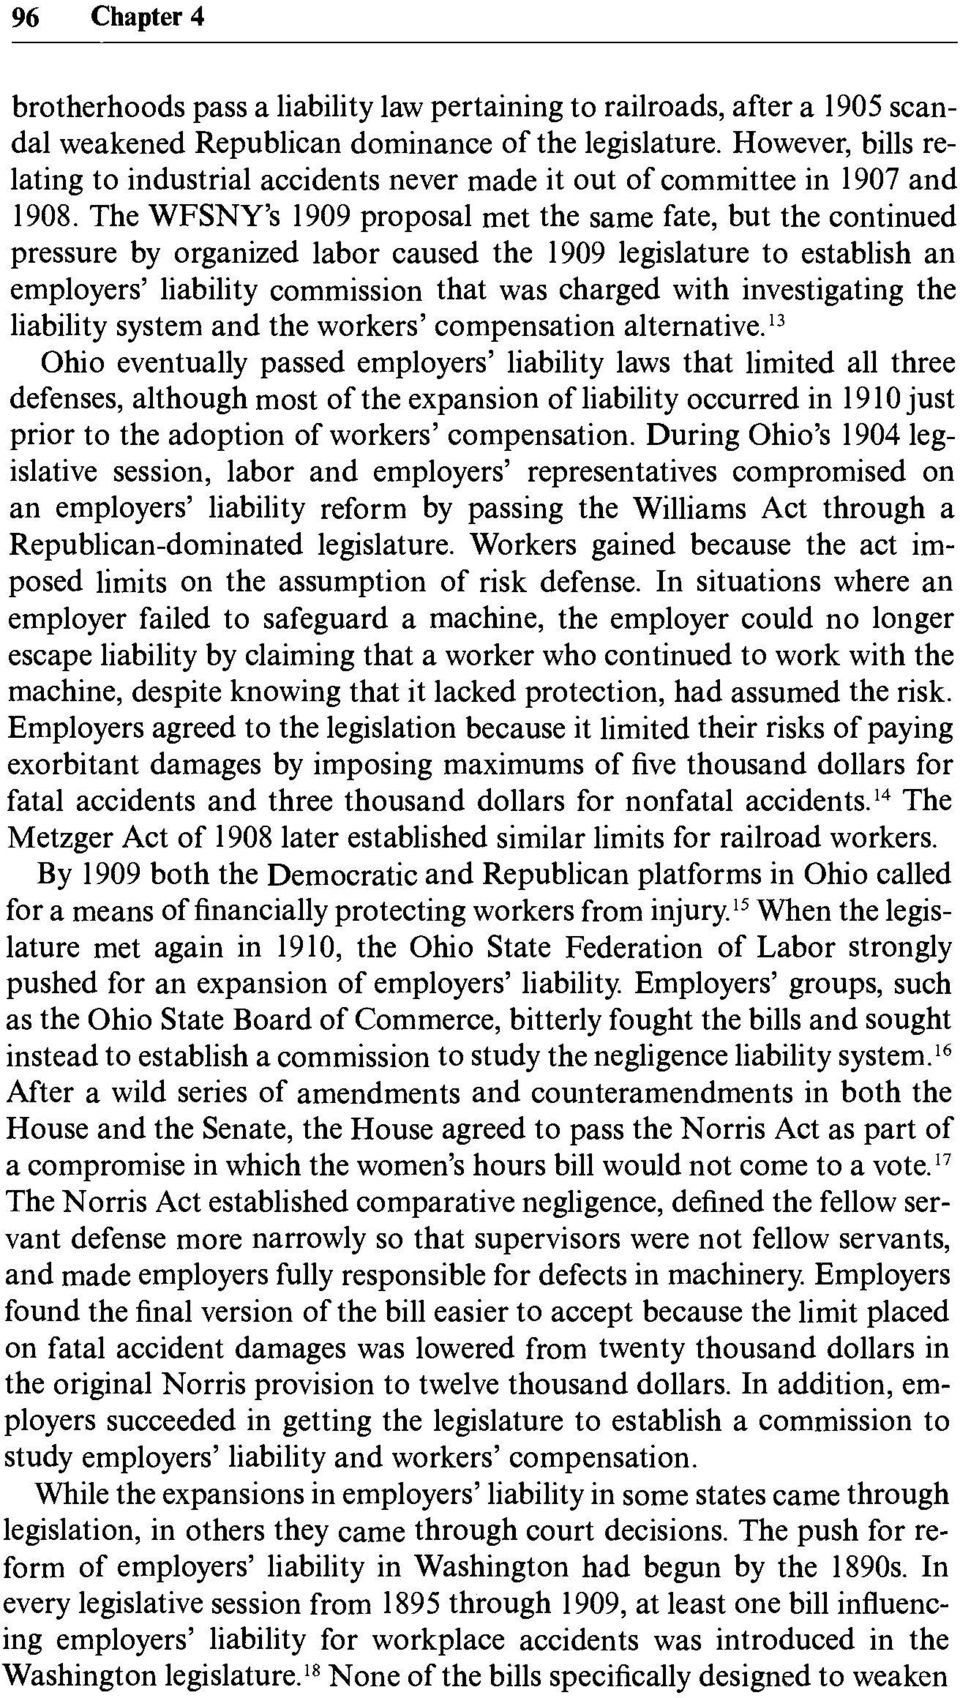 The WFSNY's 1909 proposal met the same fate, but the continued pressure by organized labor caused the 1909 legislature to establish an employers' liability commission that was charged with